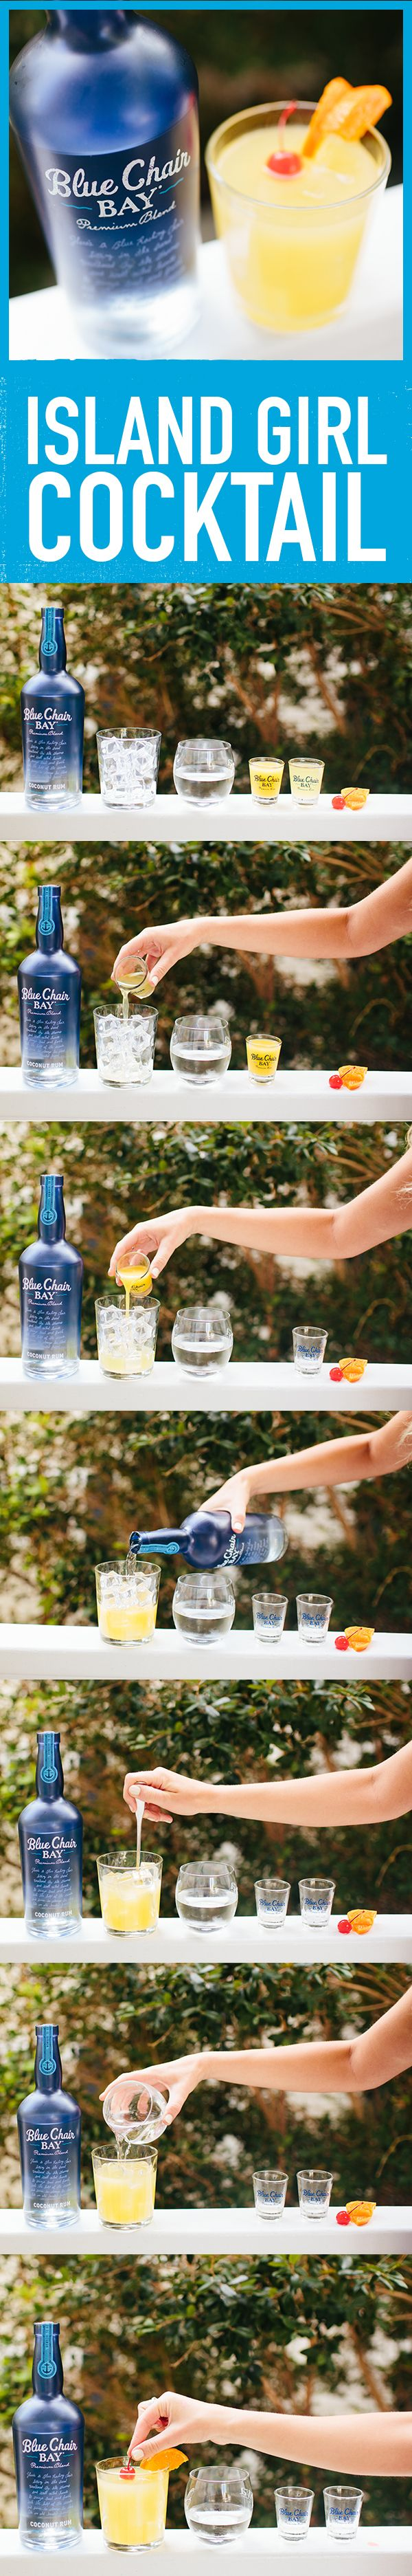 ISLAND GIRL COCKTAIL // 1.5 oz. Blue Chair Bay Coconut Rum + 1 oz. orange juice + 1 oz. pineapple juice + 2 oz. lemon-lime soda // Build ingredients directly into tall glass with ice. Stir and flirt. Want produce?: Add an orange slice and cherry.